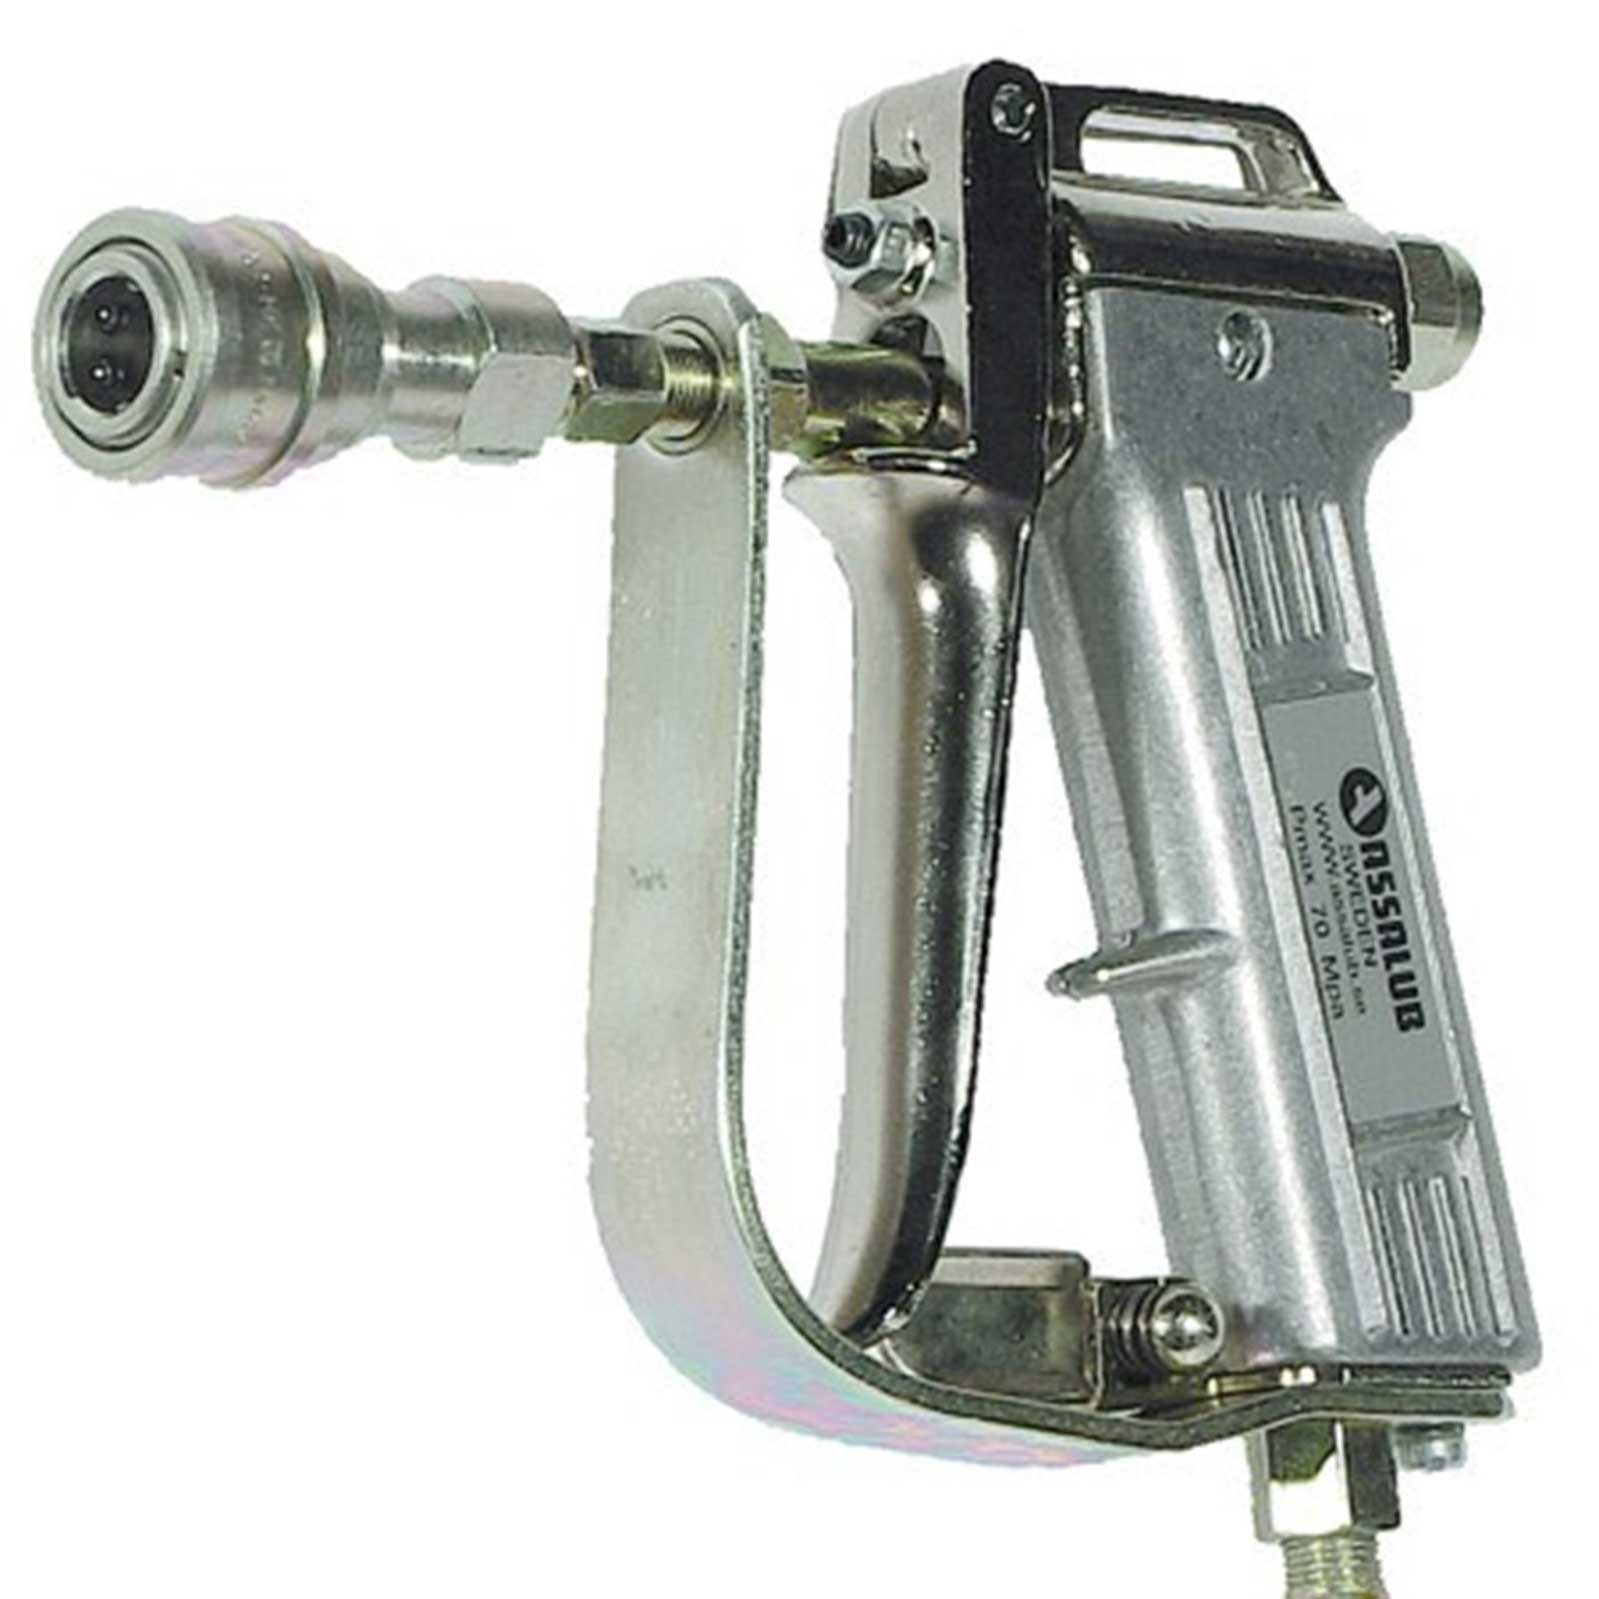 Rustbuster AIRLESS SPRAY GUN